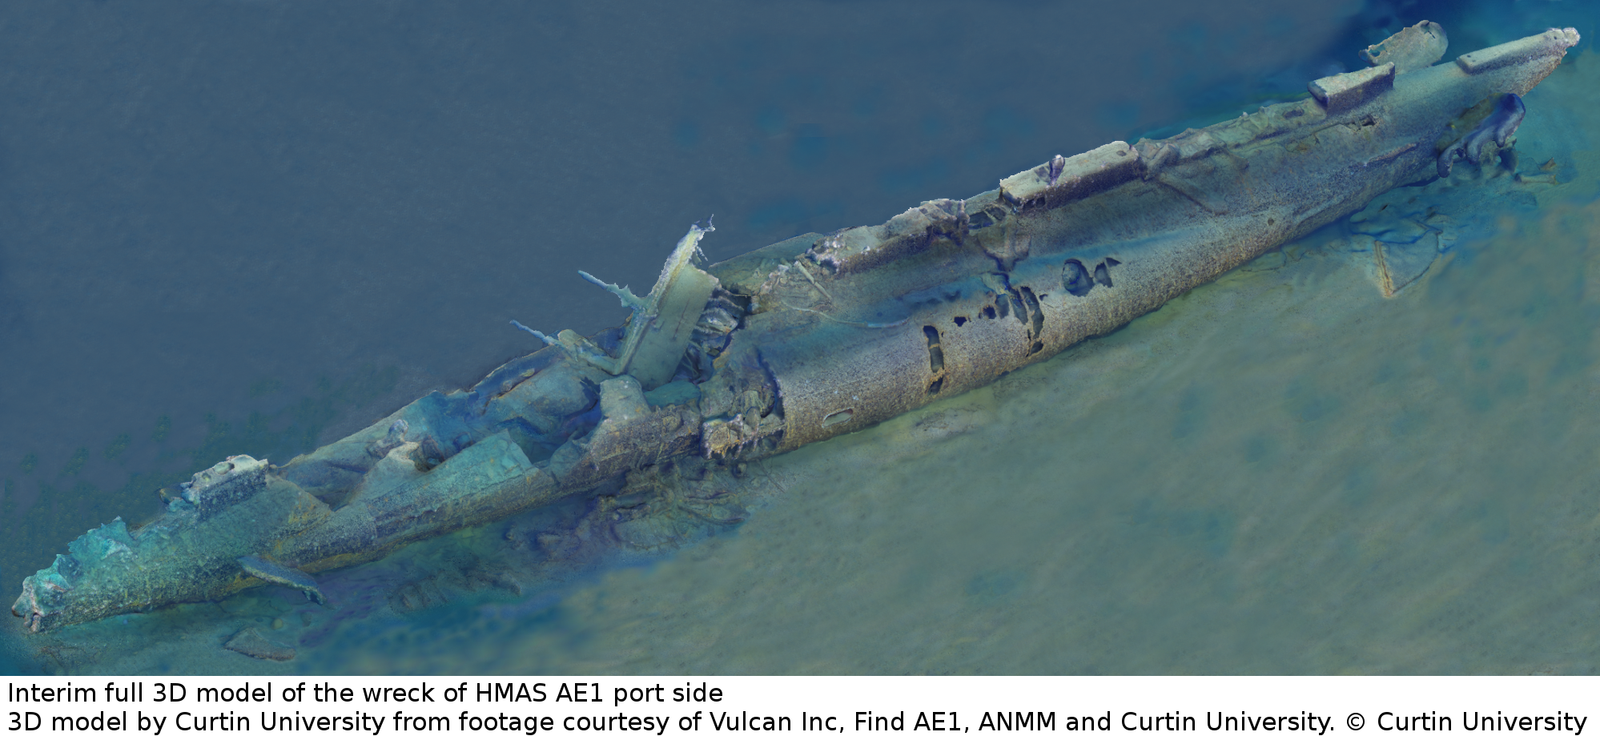 Interim full 3D model of the wreck of HMAS AE1 port side. 3D Model by Curtin University from footage courtesy of Vulcan Inc, Find AE1, ANMM and Curtin University. Copyright Curtin University